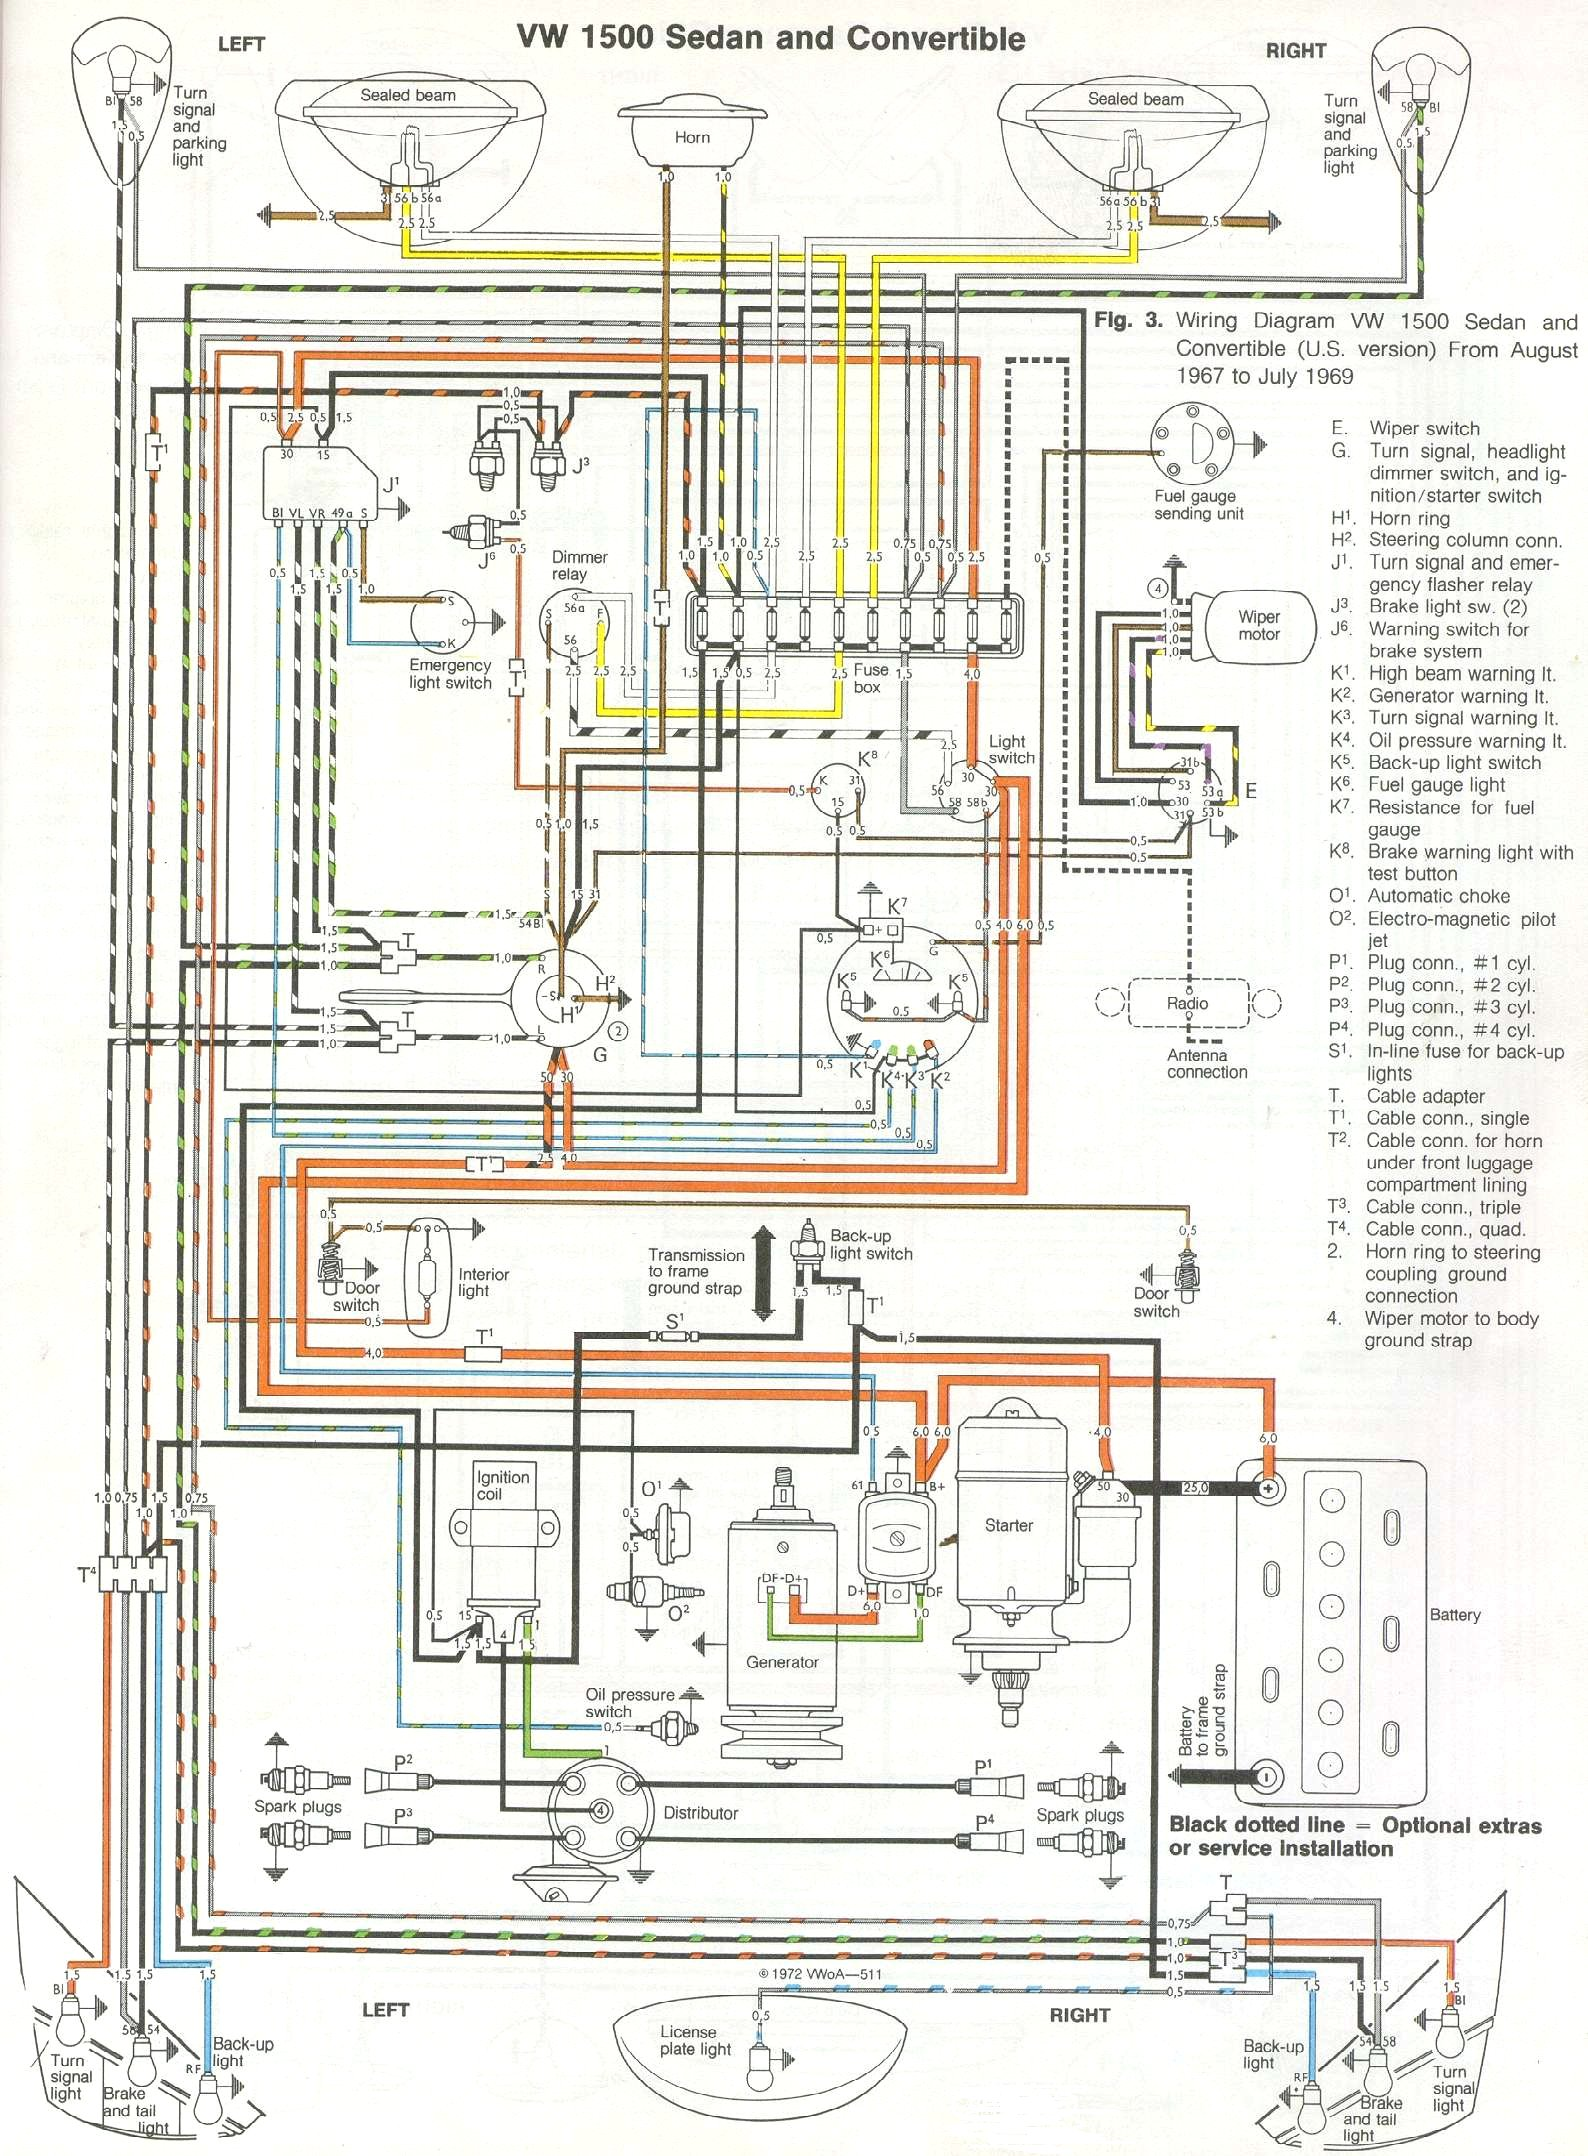 Sterling Wiring Diagram 2007 Will Be A Thing Truck Fuse Box Diagrams 2000 Vw Bettle Schematic Rh Theodocle Fion Com 2008 Heater